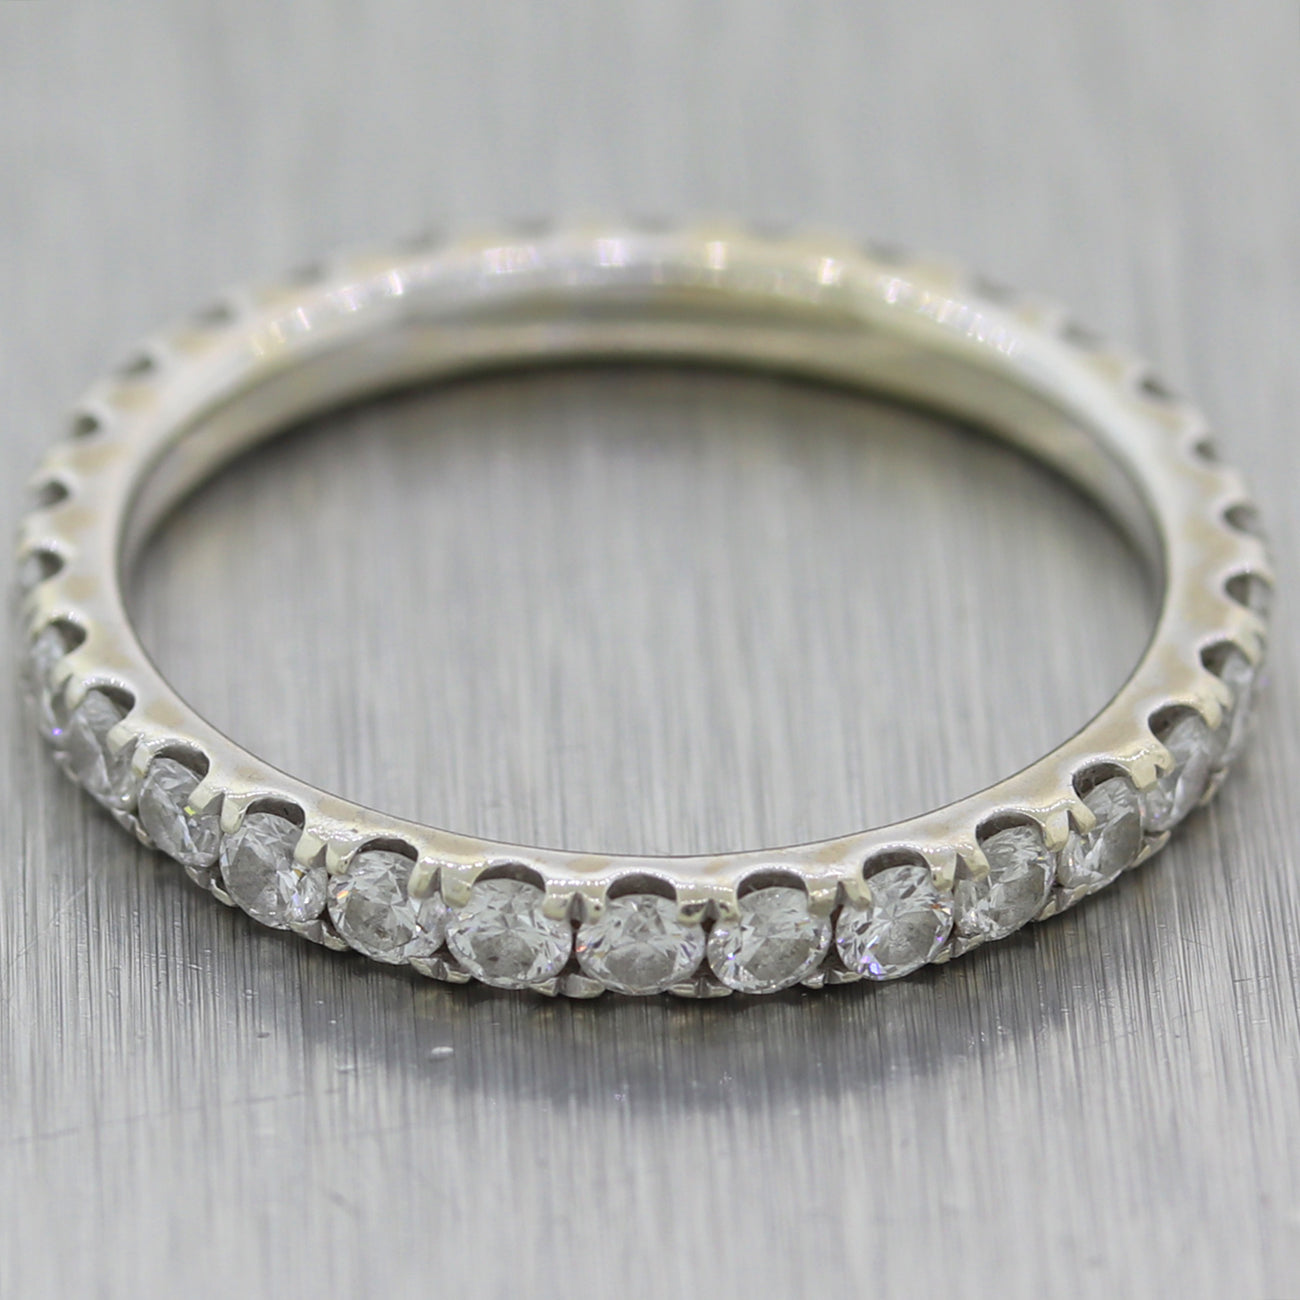 Modern 14k White Gold 1.15ctw Diamond Eternity Wedding Band Ring